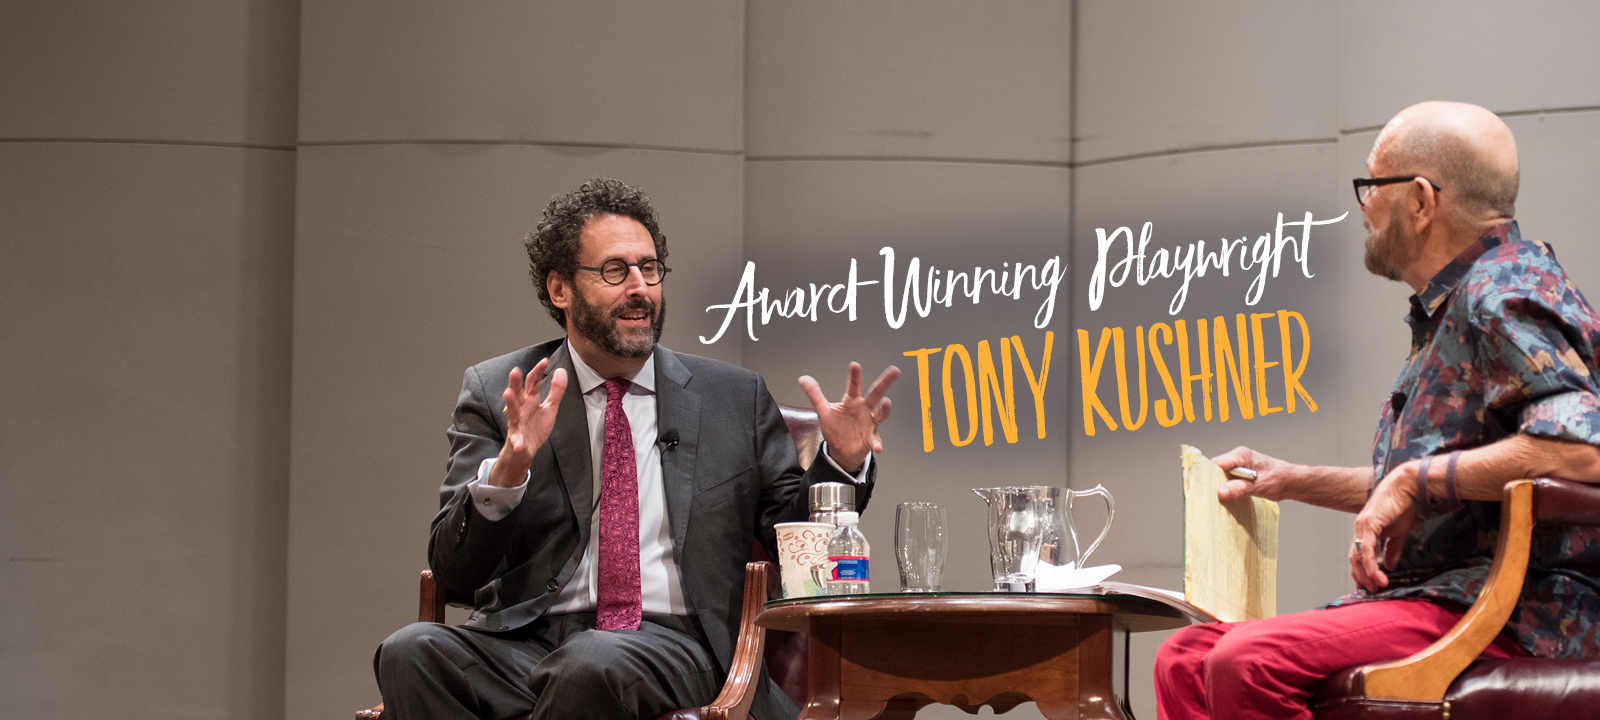 Loyola welcomed award-winning playwright Tony Kushner